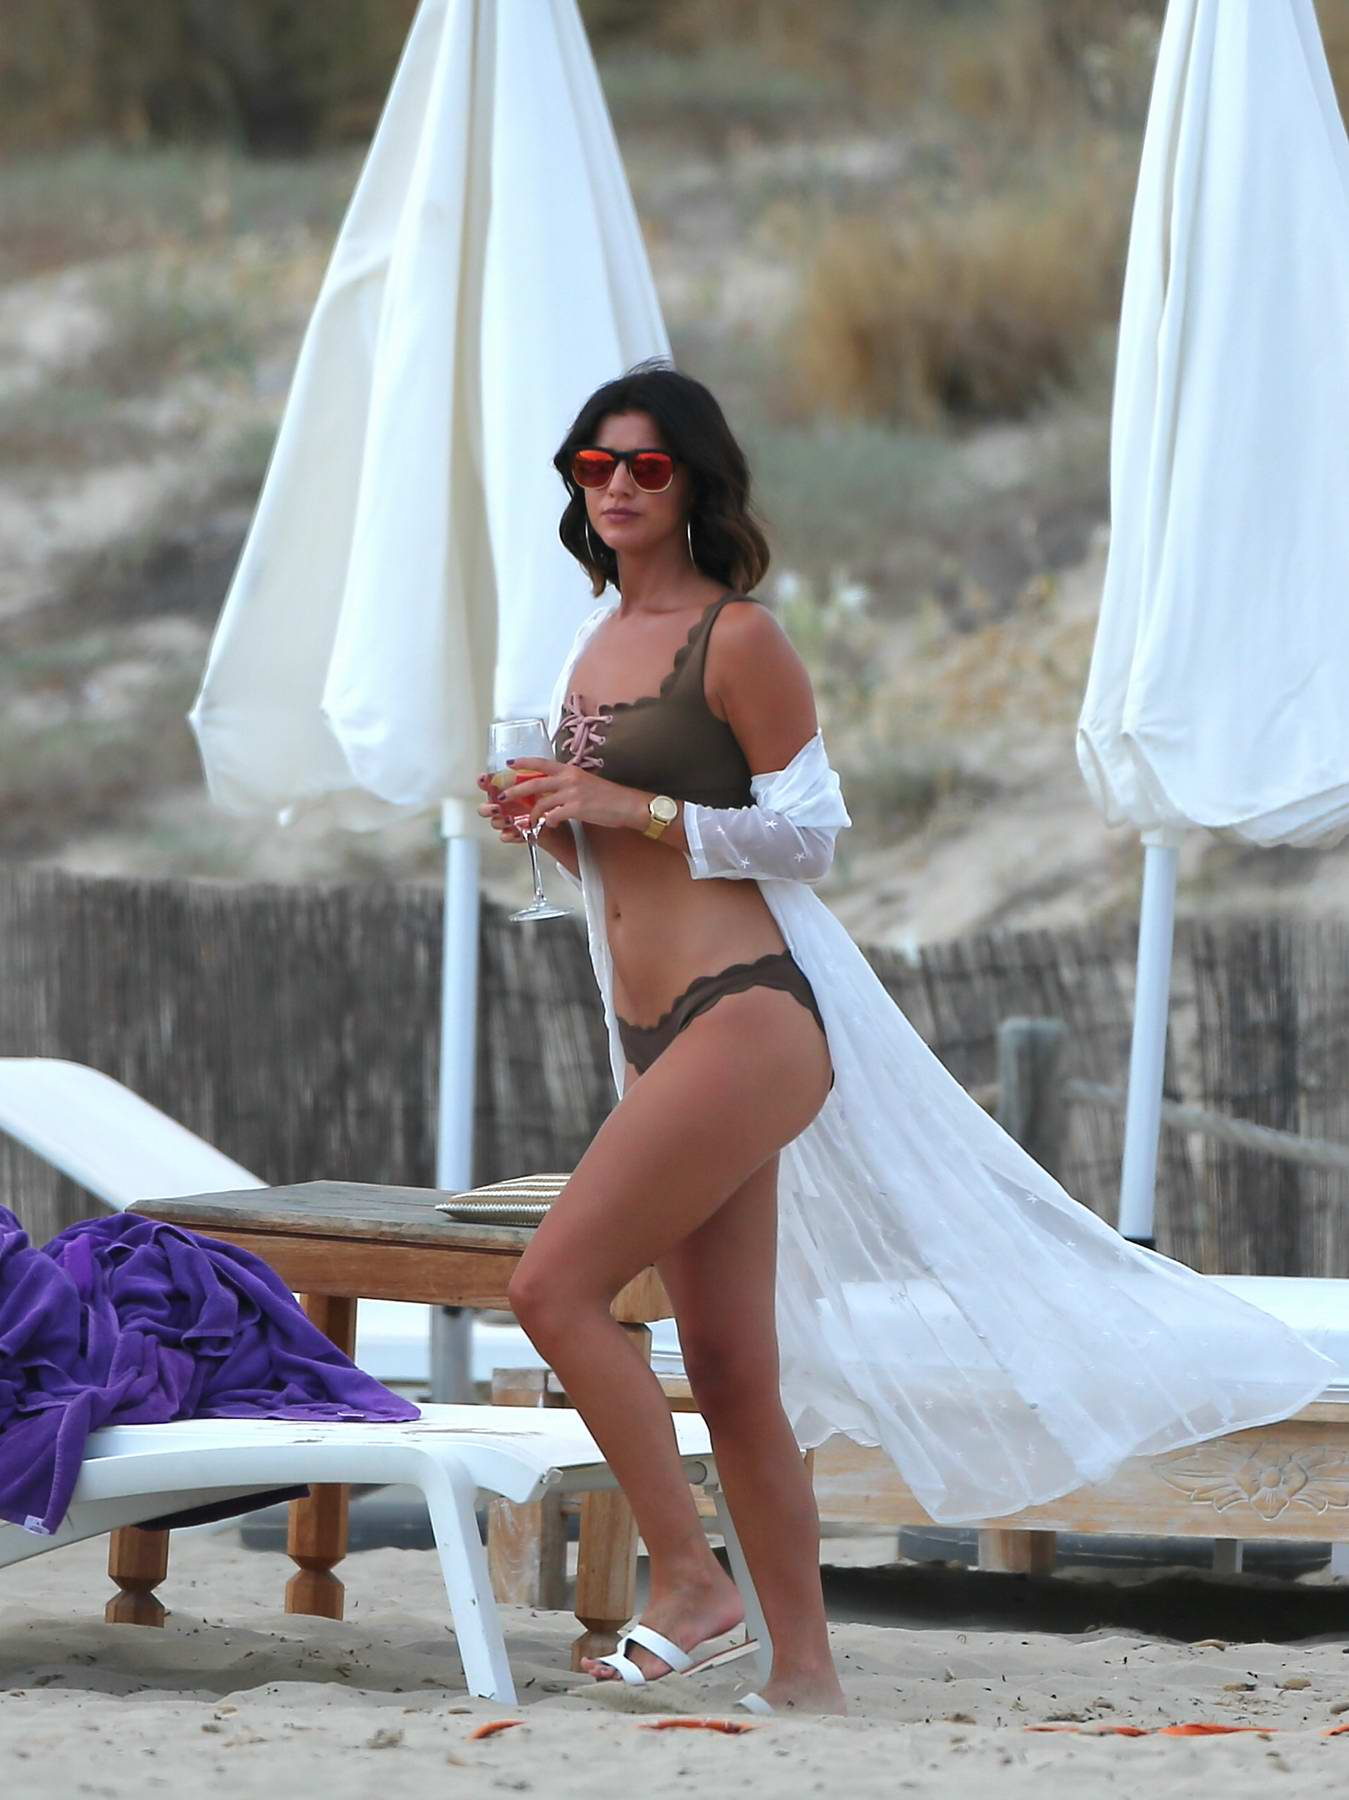 Lucy Mecklenburgh in a Bikini relaxing on the Beach while on Holiday in Ibiza, Spain